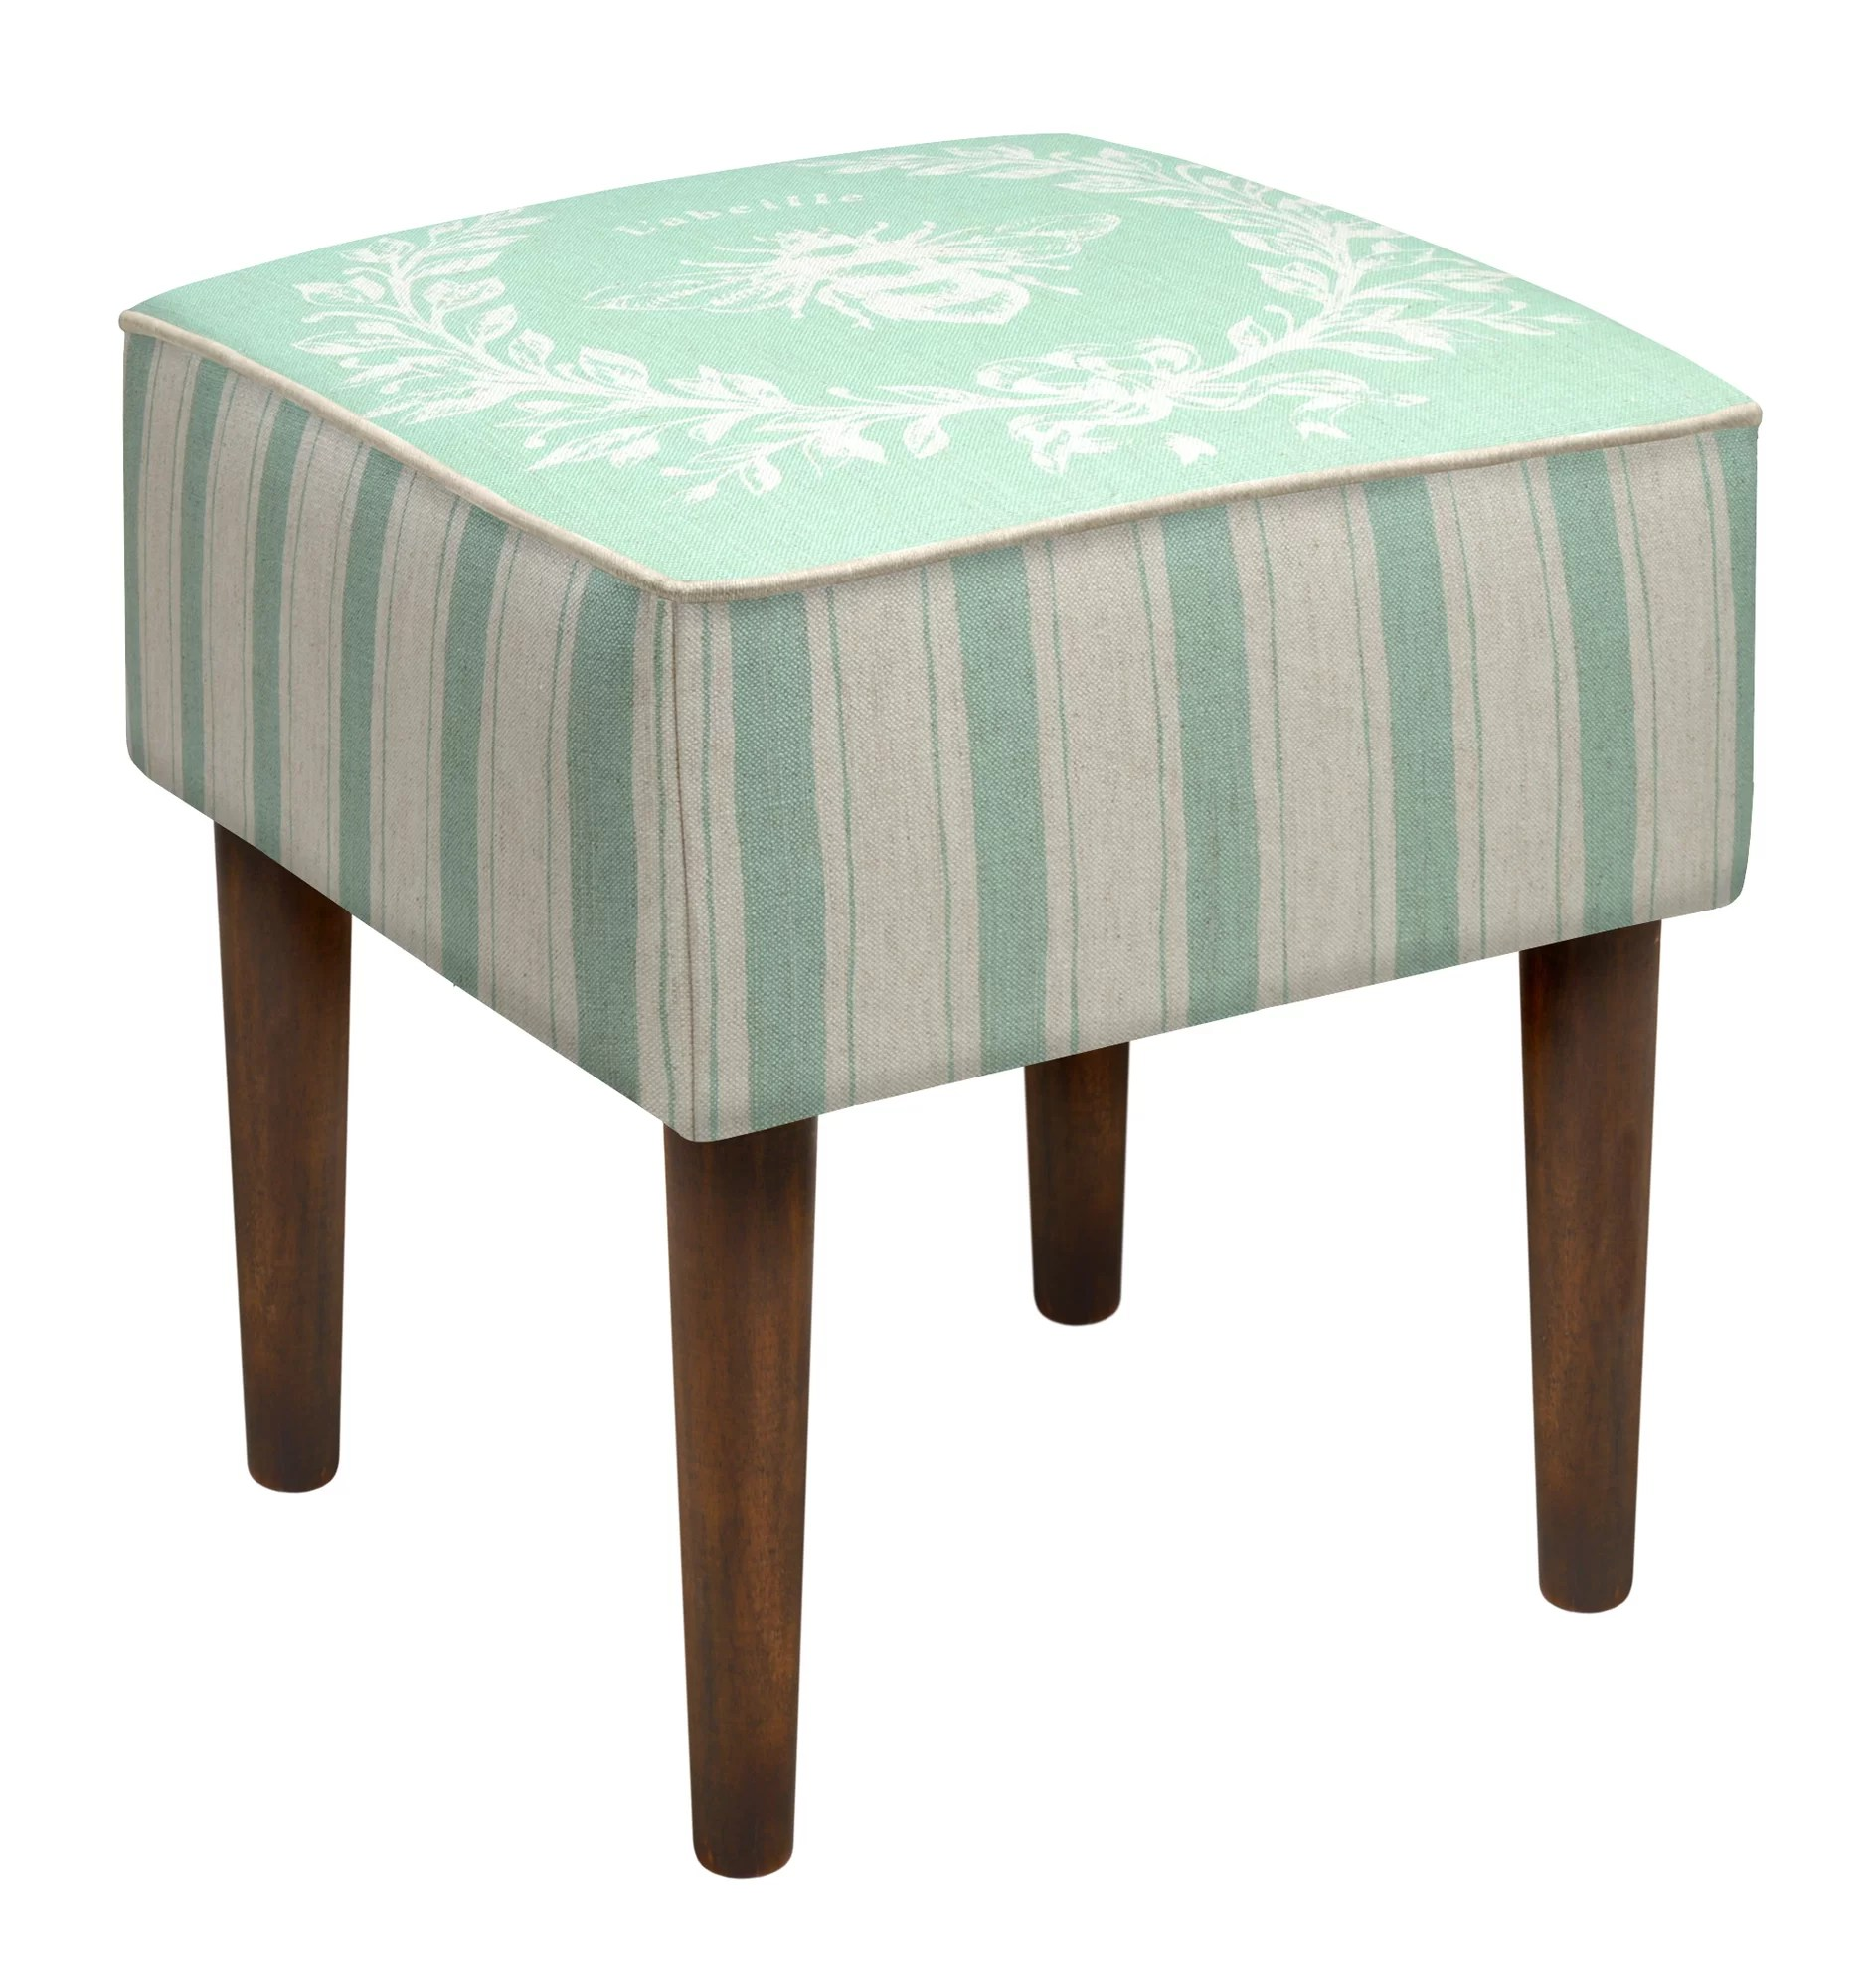 Upholstered Vanity Chair 123 Creations Napoleon Bee Upholstered Vanity Stool